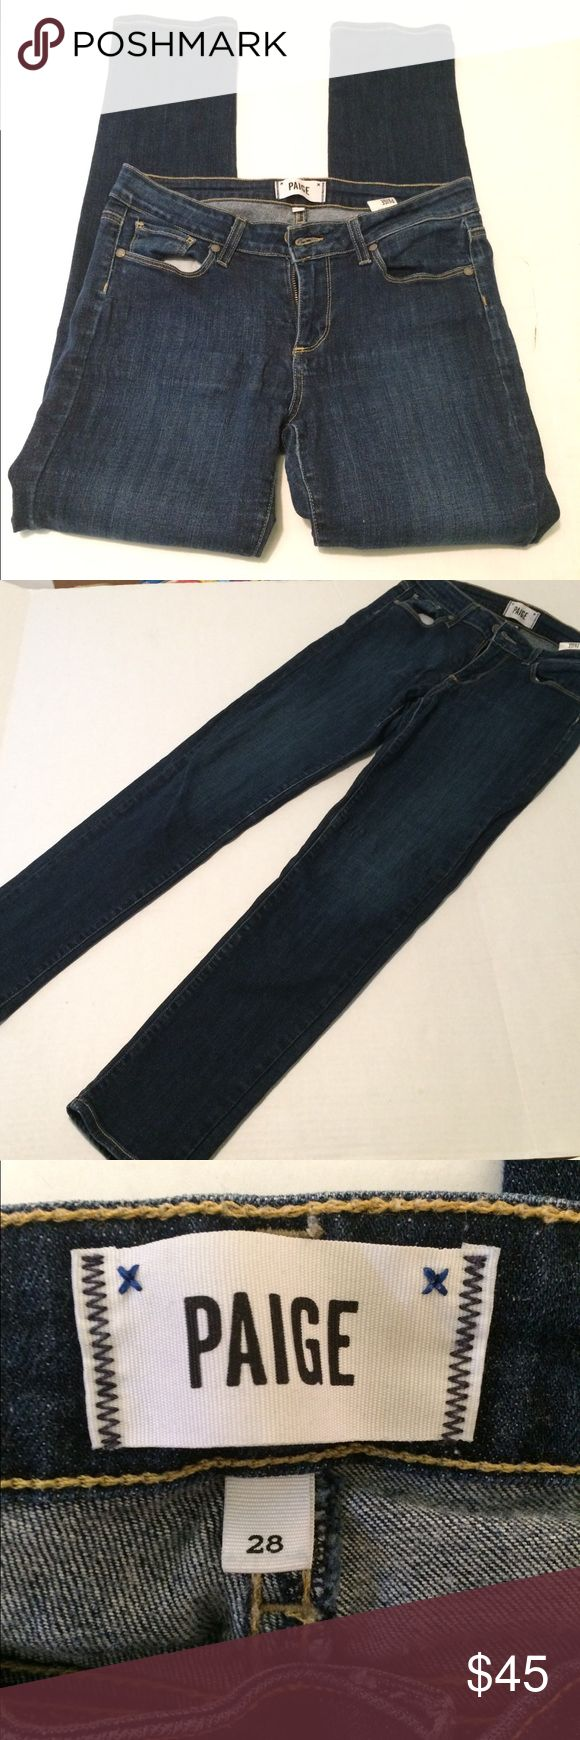 PAIGE Skyline Ankle Peg Jeans! PAIGE Skyline Ankle Peg Jeans! Size 28 with a 28 inch inseam.  Gently used condition with plenty of life left for a new home!  Dress these up for a night out with the girls, or go for the casual look for a day outing.  Dark denim wash color. PAIGE Jeans